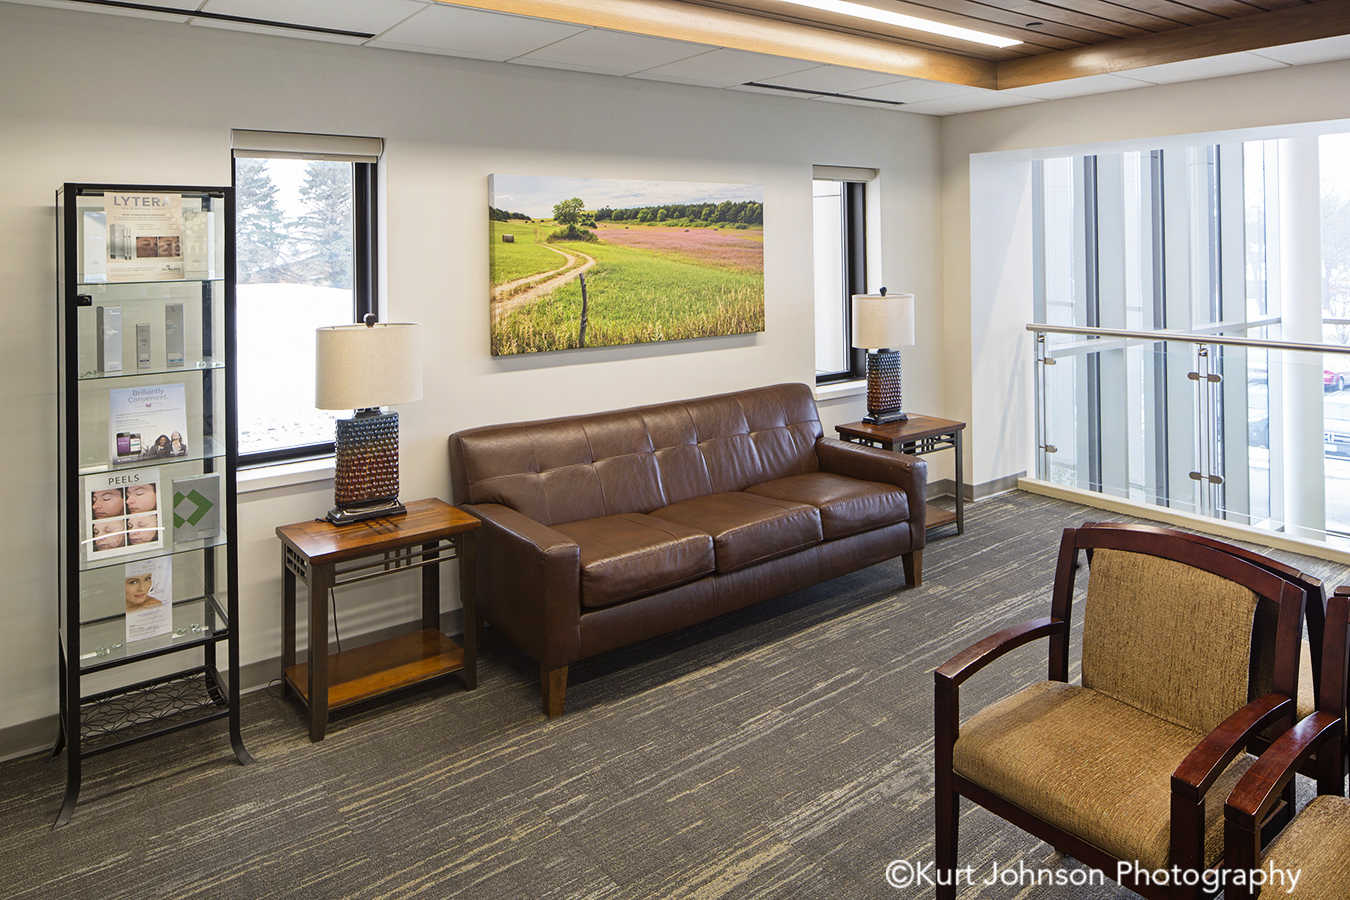 brooking south dakota healthcare installation gallery wrapped canvas reception waiting area